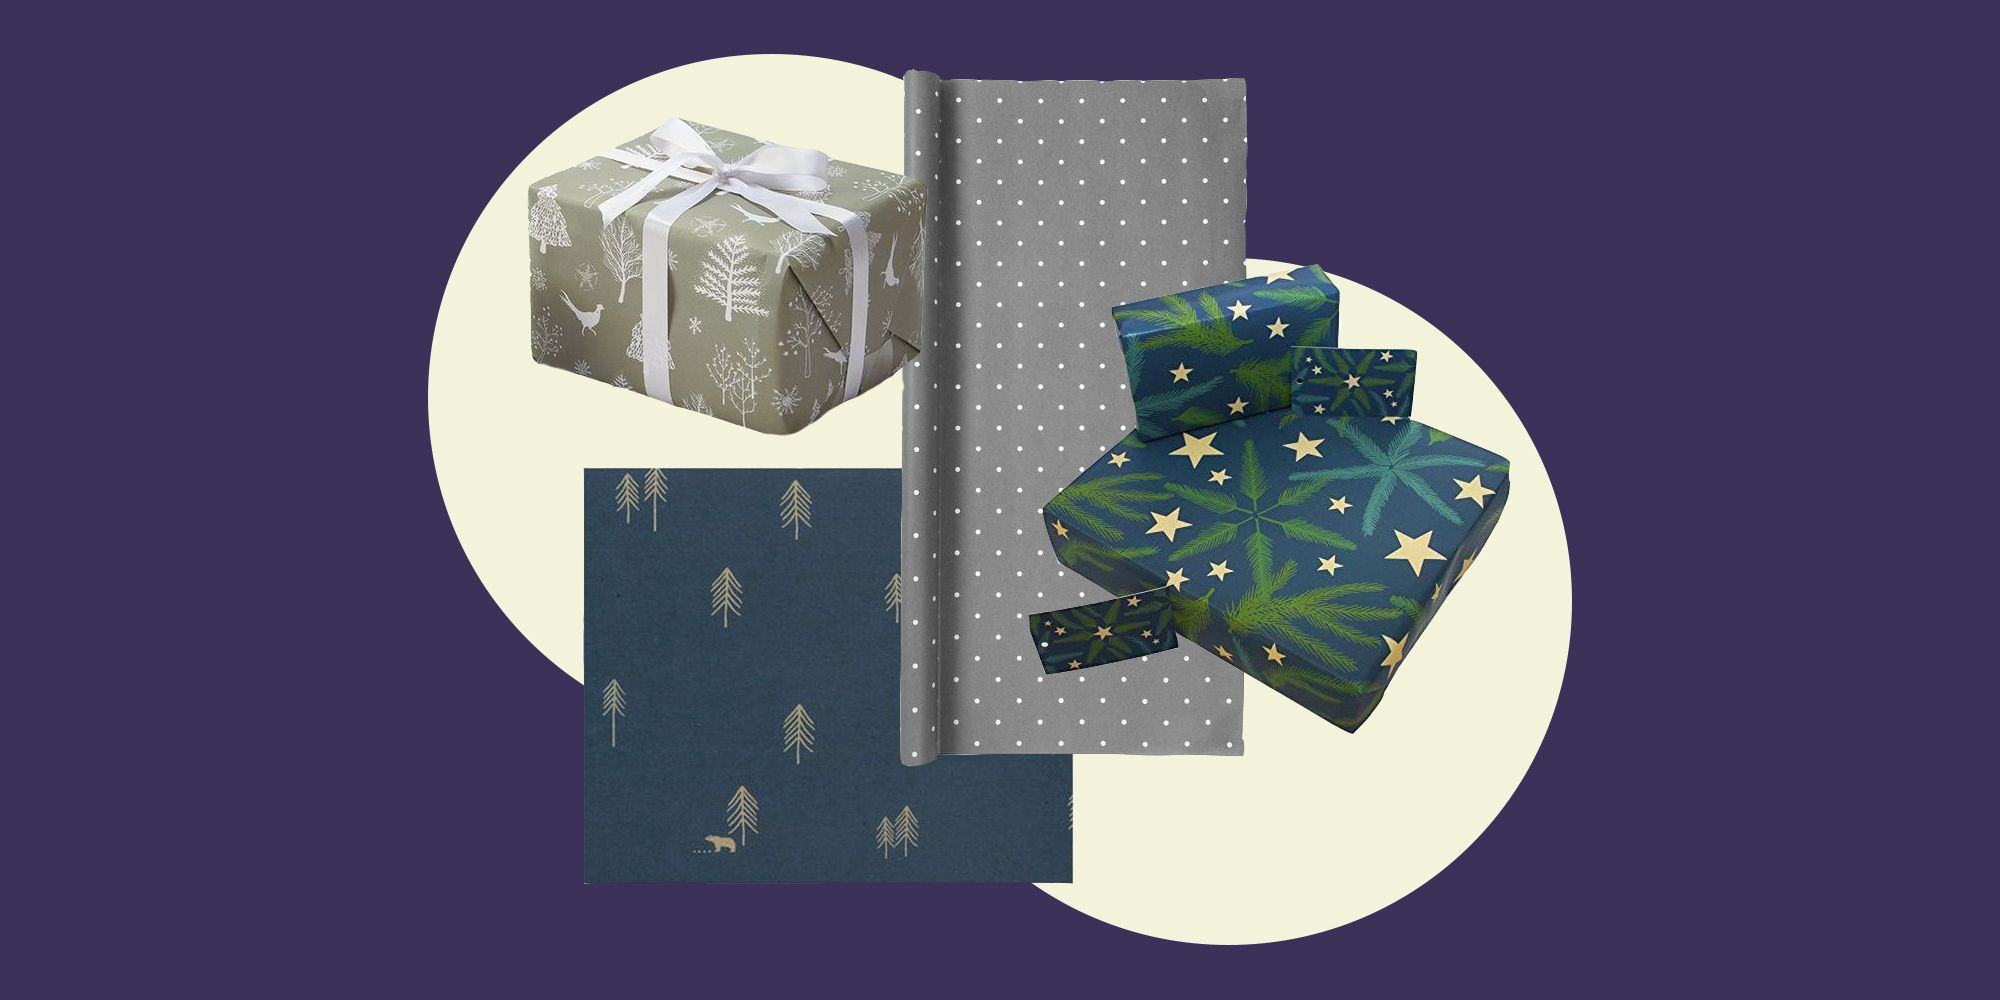 The best recyclable wrapping paper for Christmas gifts